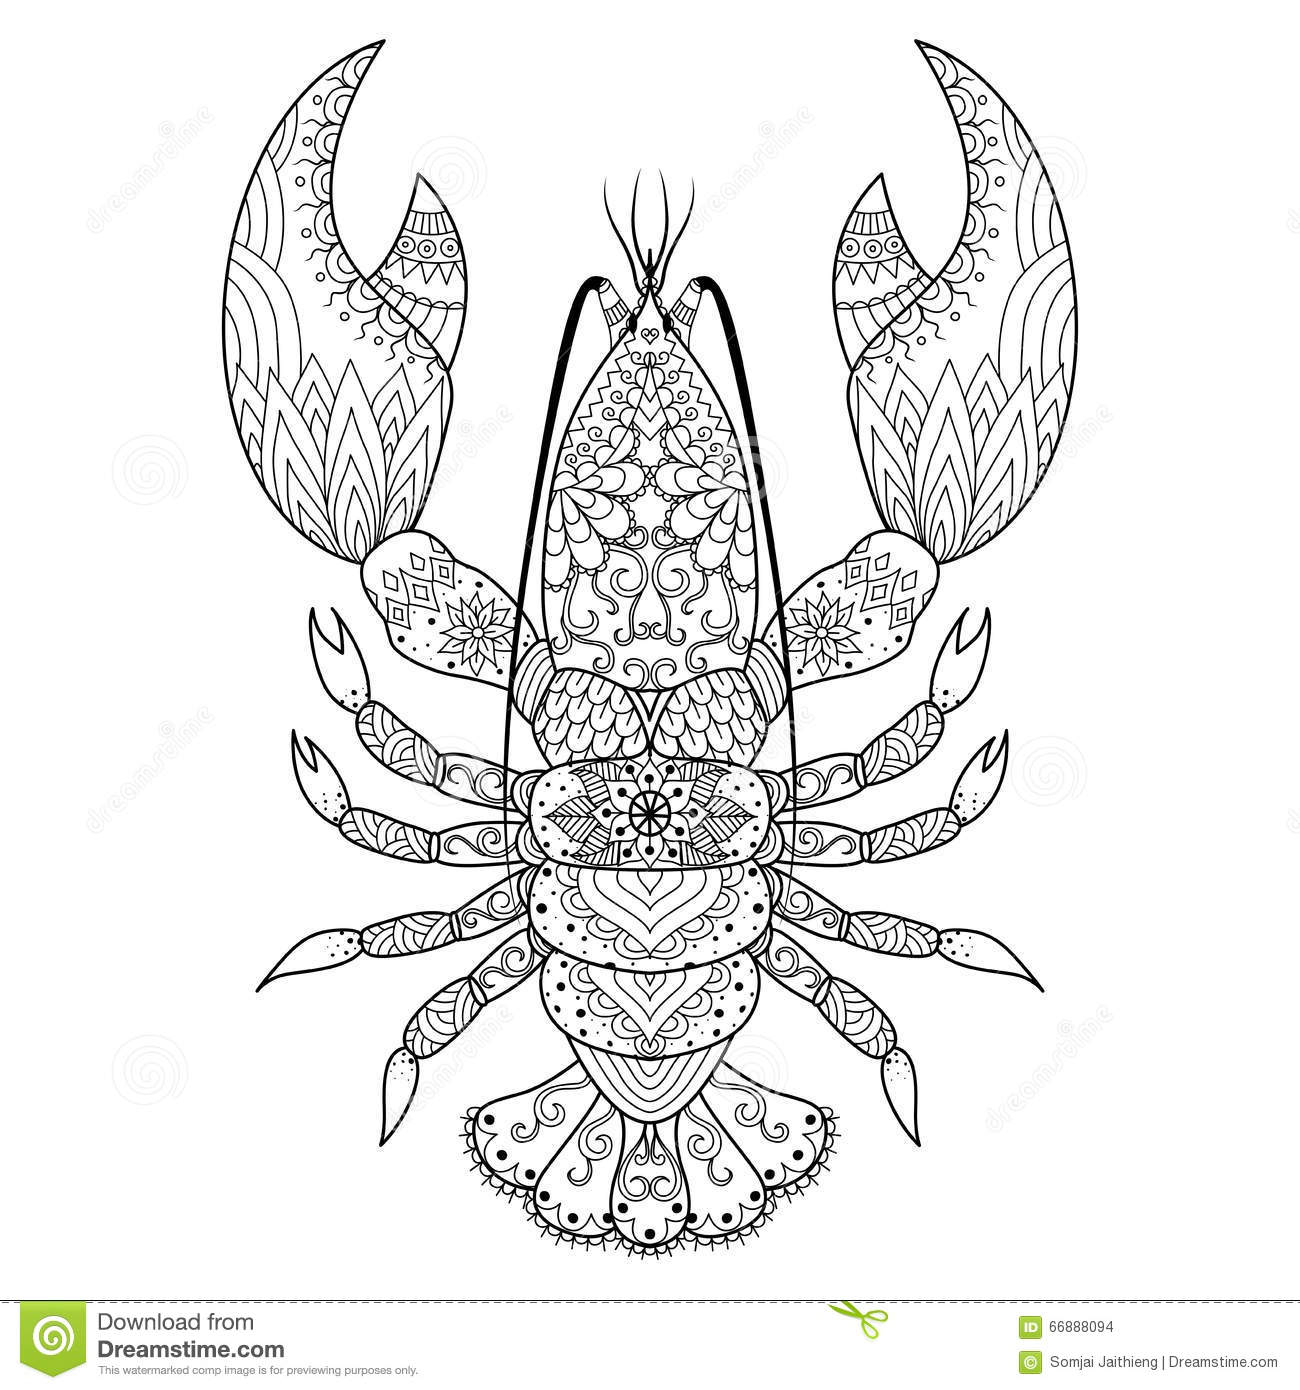 Tattoo Coloring Book Pages  Collection 8a - Save it to your computer